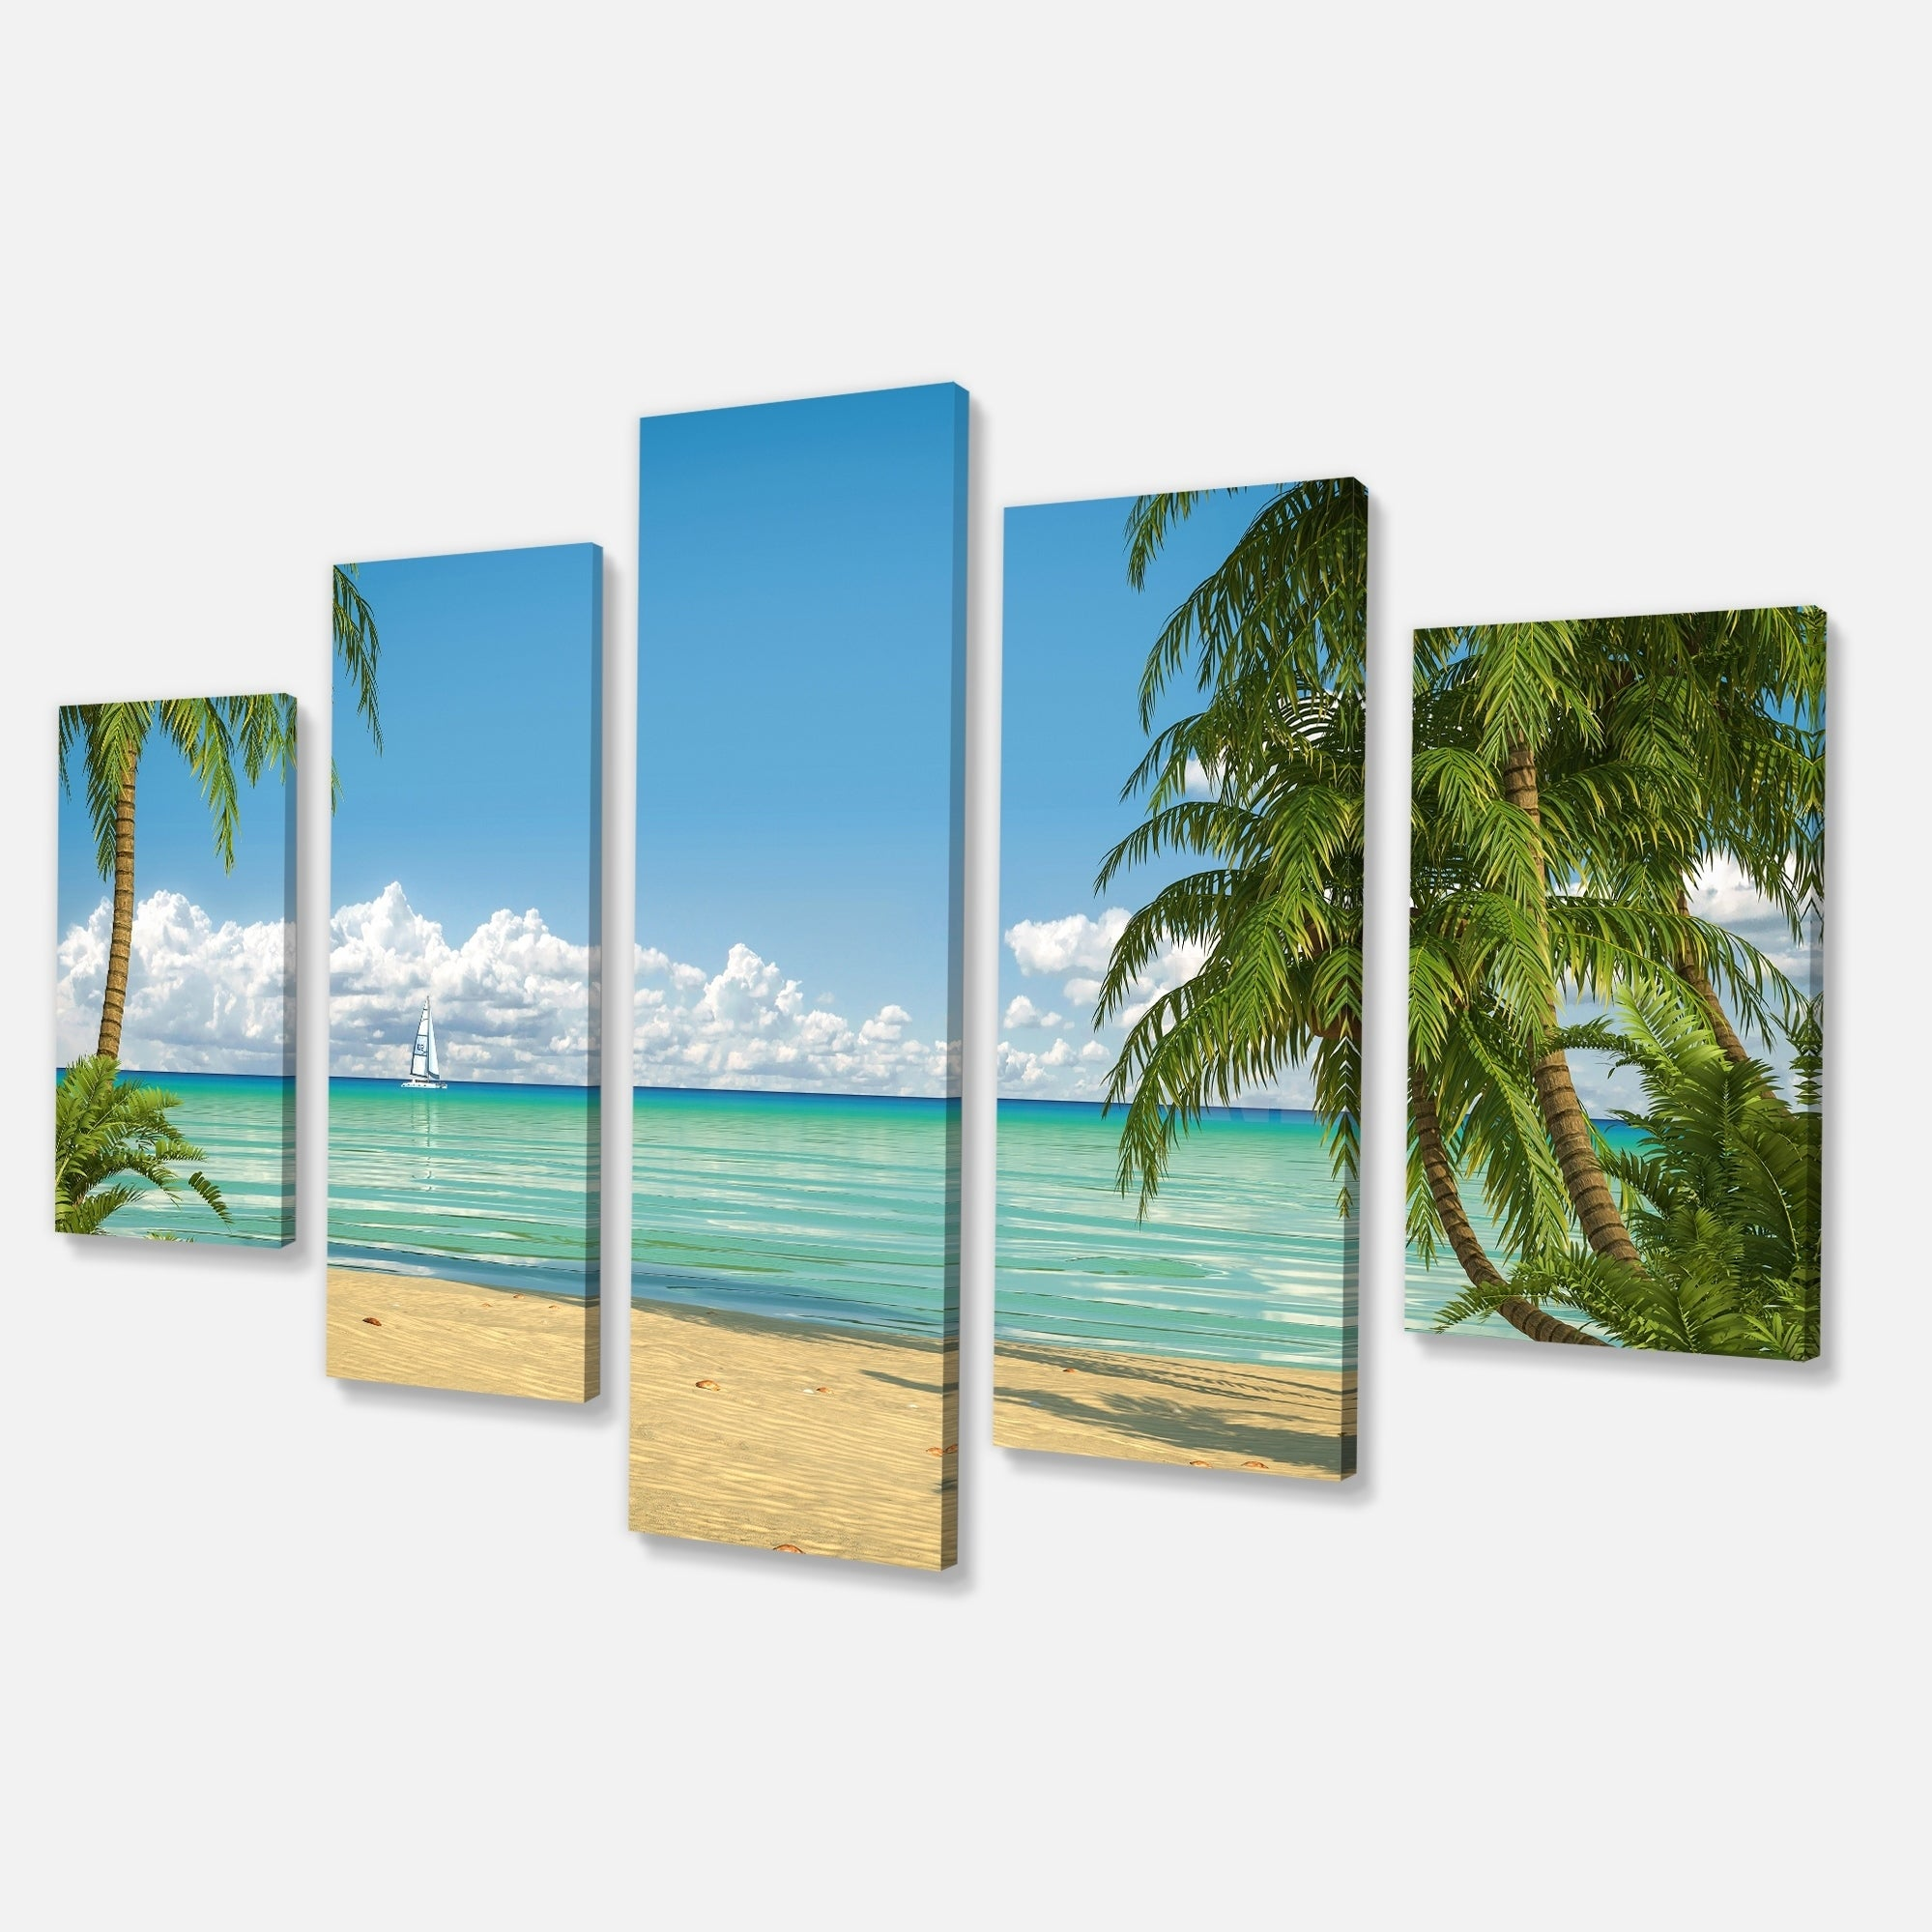 Palms-at-Caribbean-Beach-Seashore-Photo-Canvas-Art-Print-Small thumbnail 9